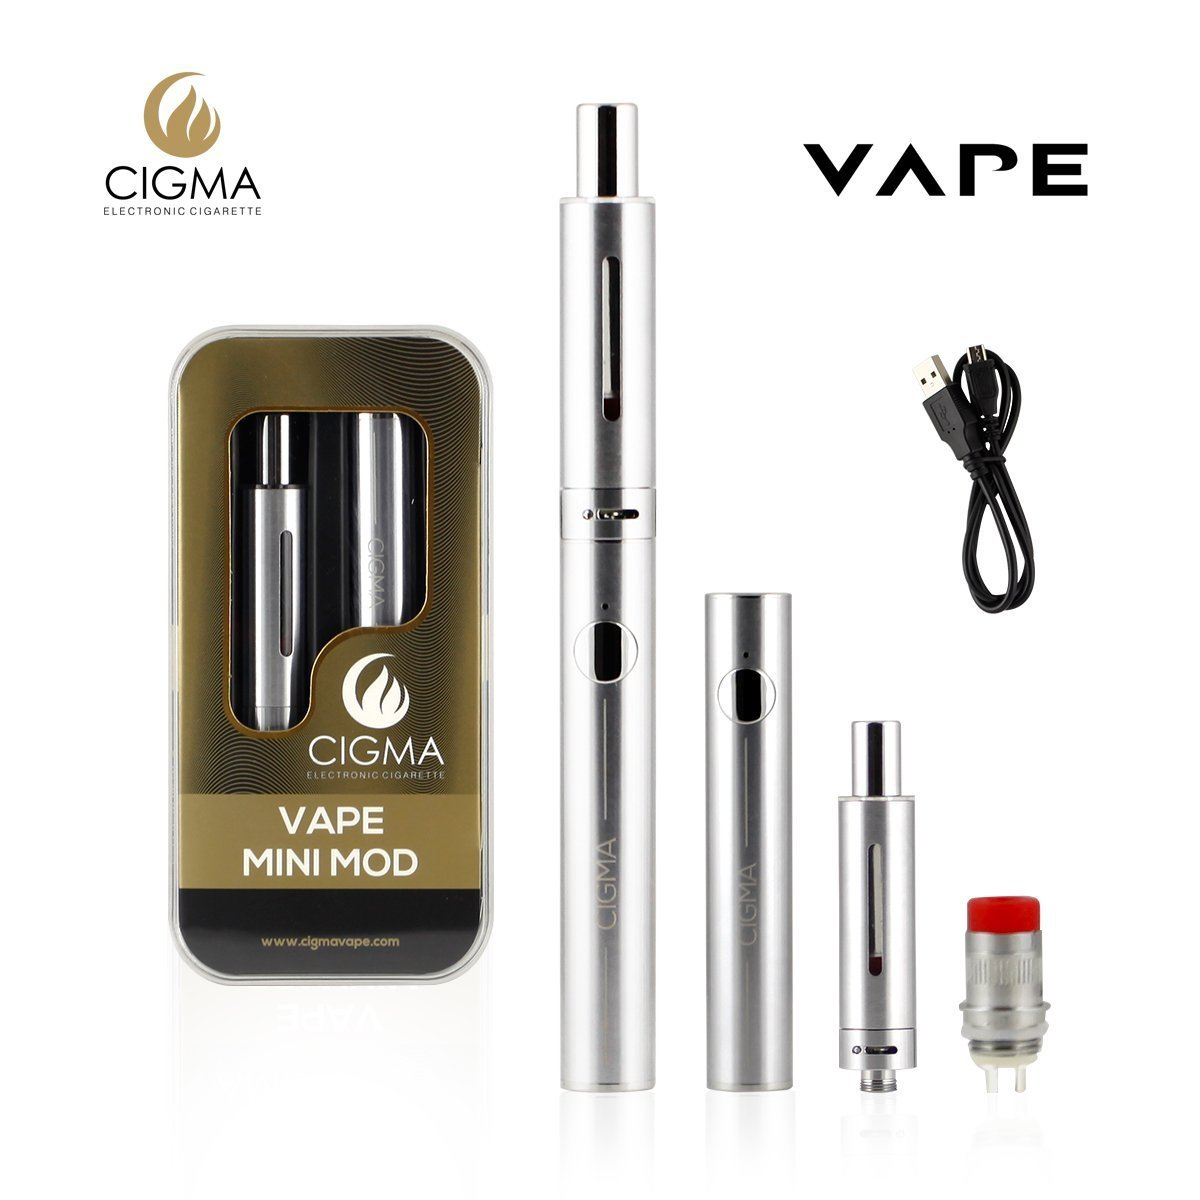 Cigma Mini Mod Vaping Kit Cigma Vape Deutschland